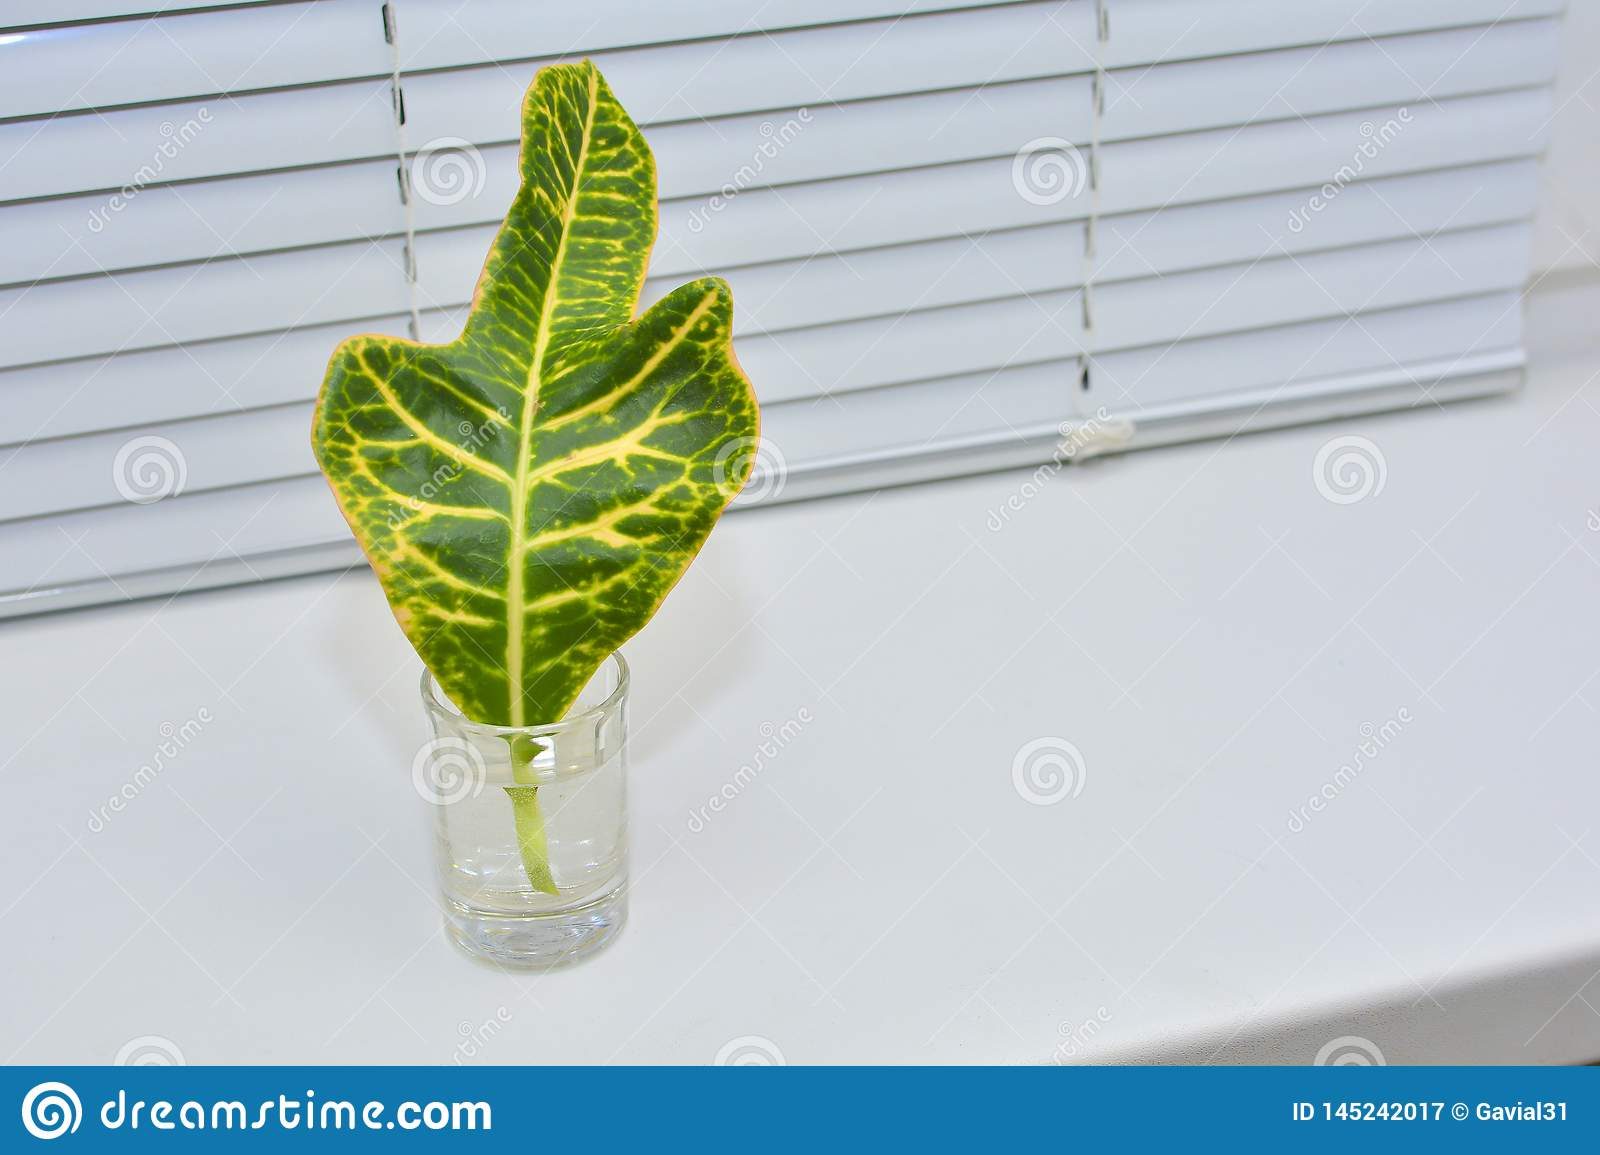 A Green Leaf Of A Plant Stands On The Windowsill In A Glass Of